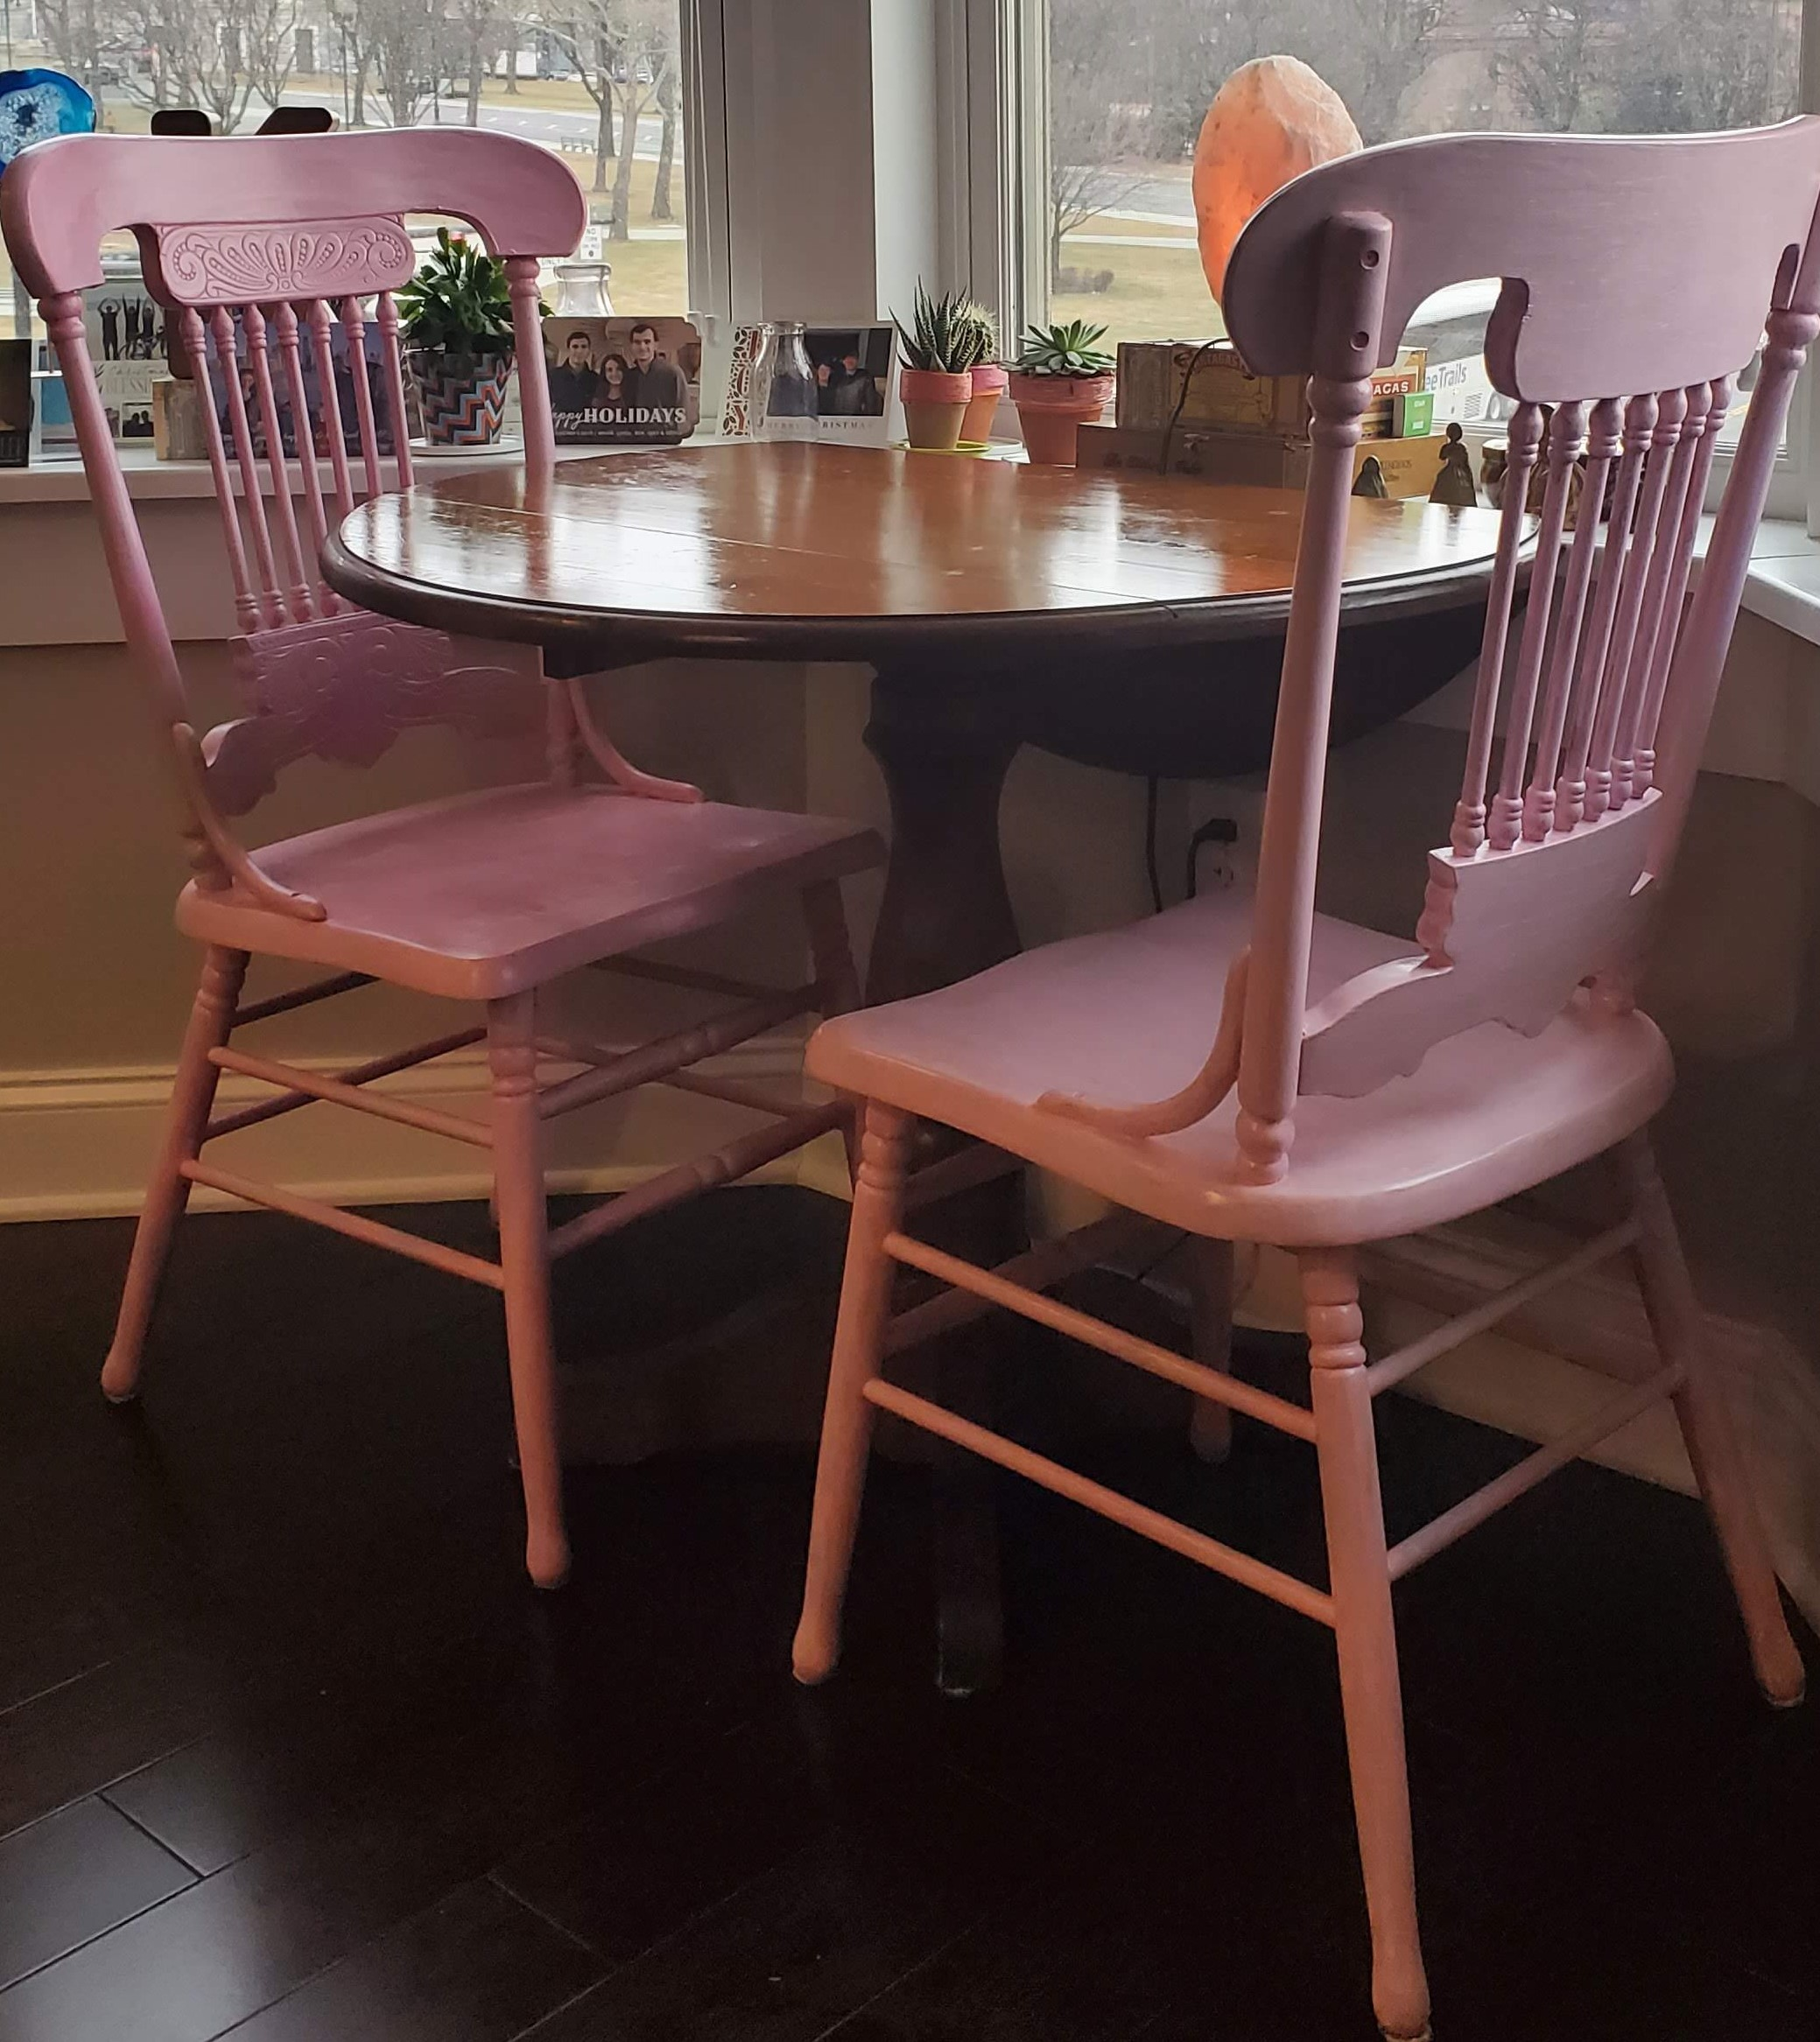 Pink Kitchen chairs are my new reality.